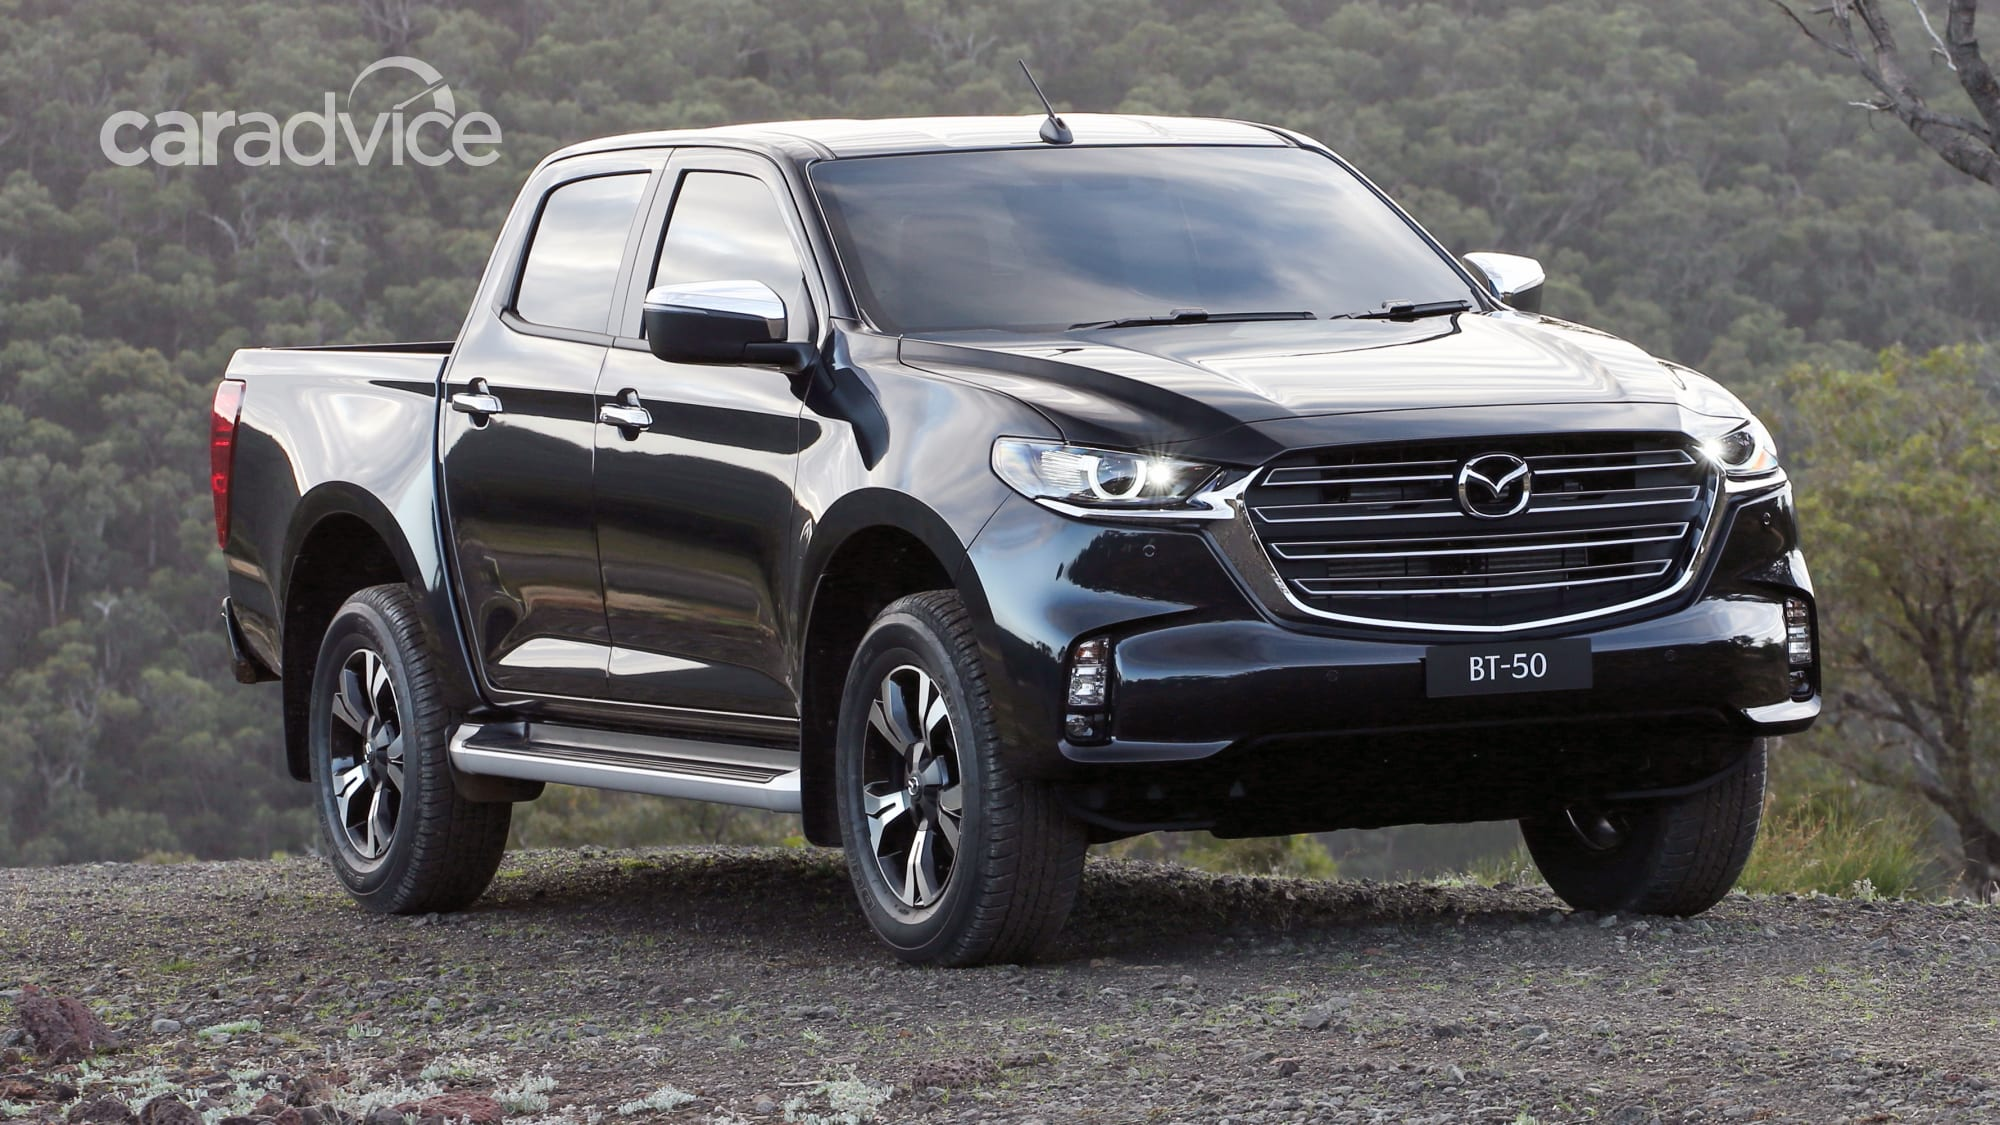 2021 Mazda BT-50 unveiled, in showrooms this year | CarAdvice